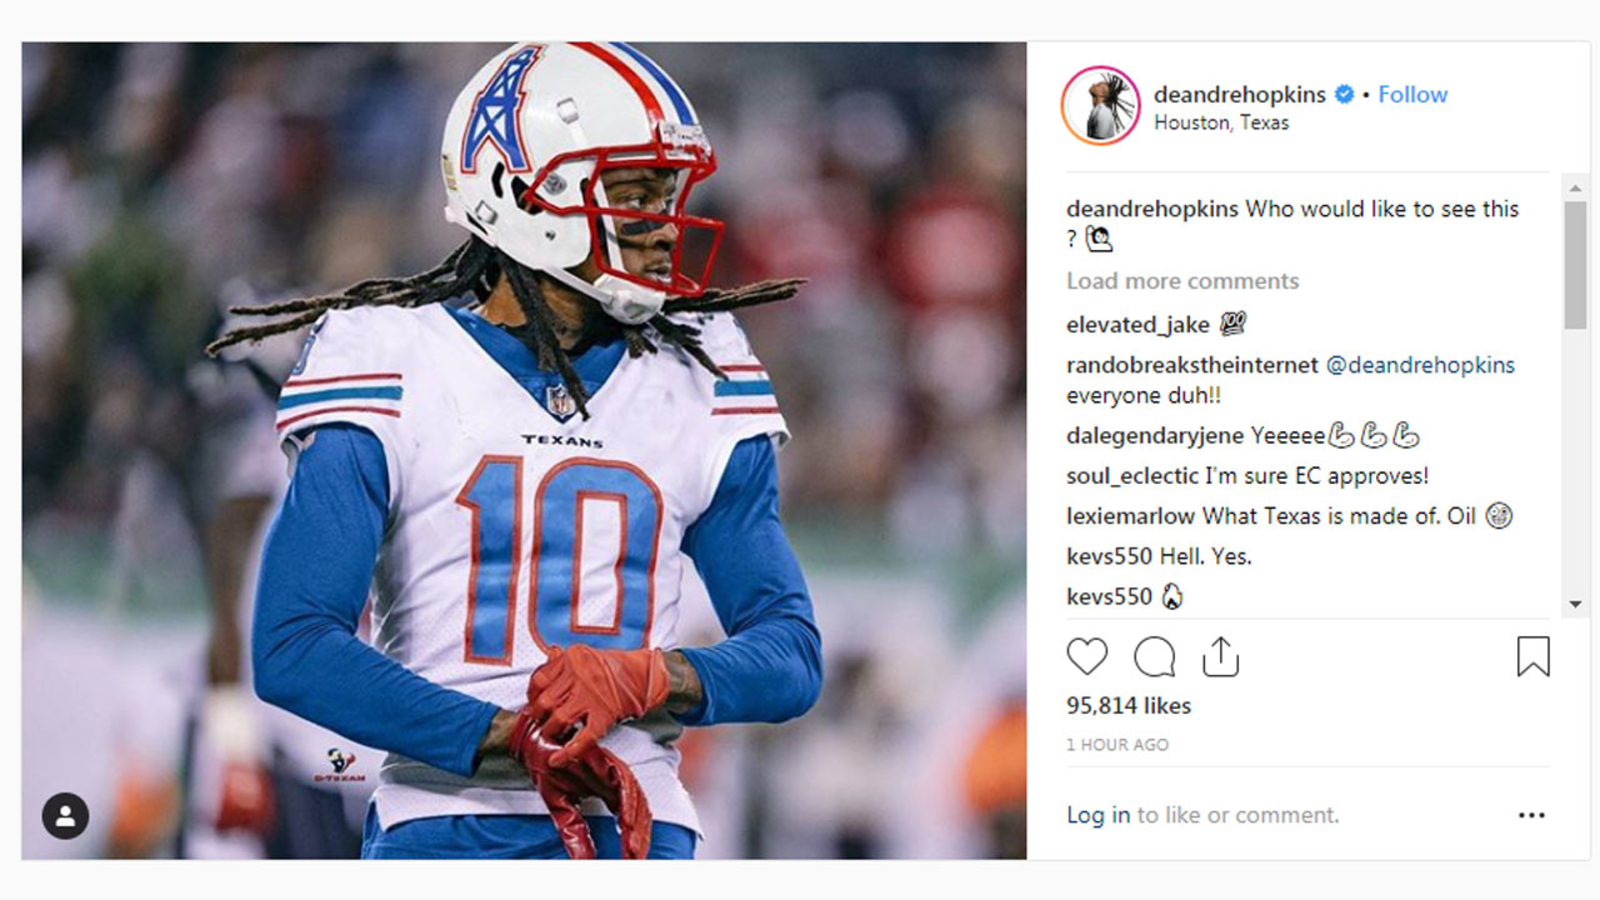 f90f8eef8c6 Texans  DeAndre Hopkins wants Oilers jersey back in Houston